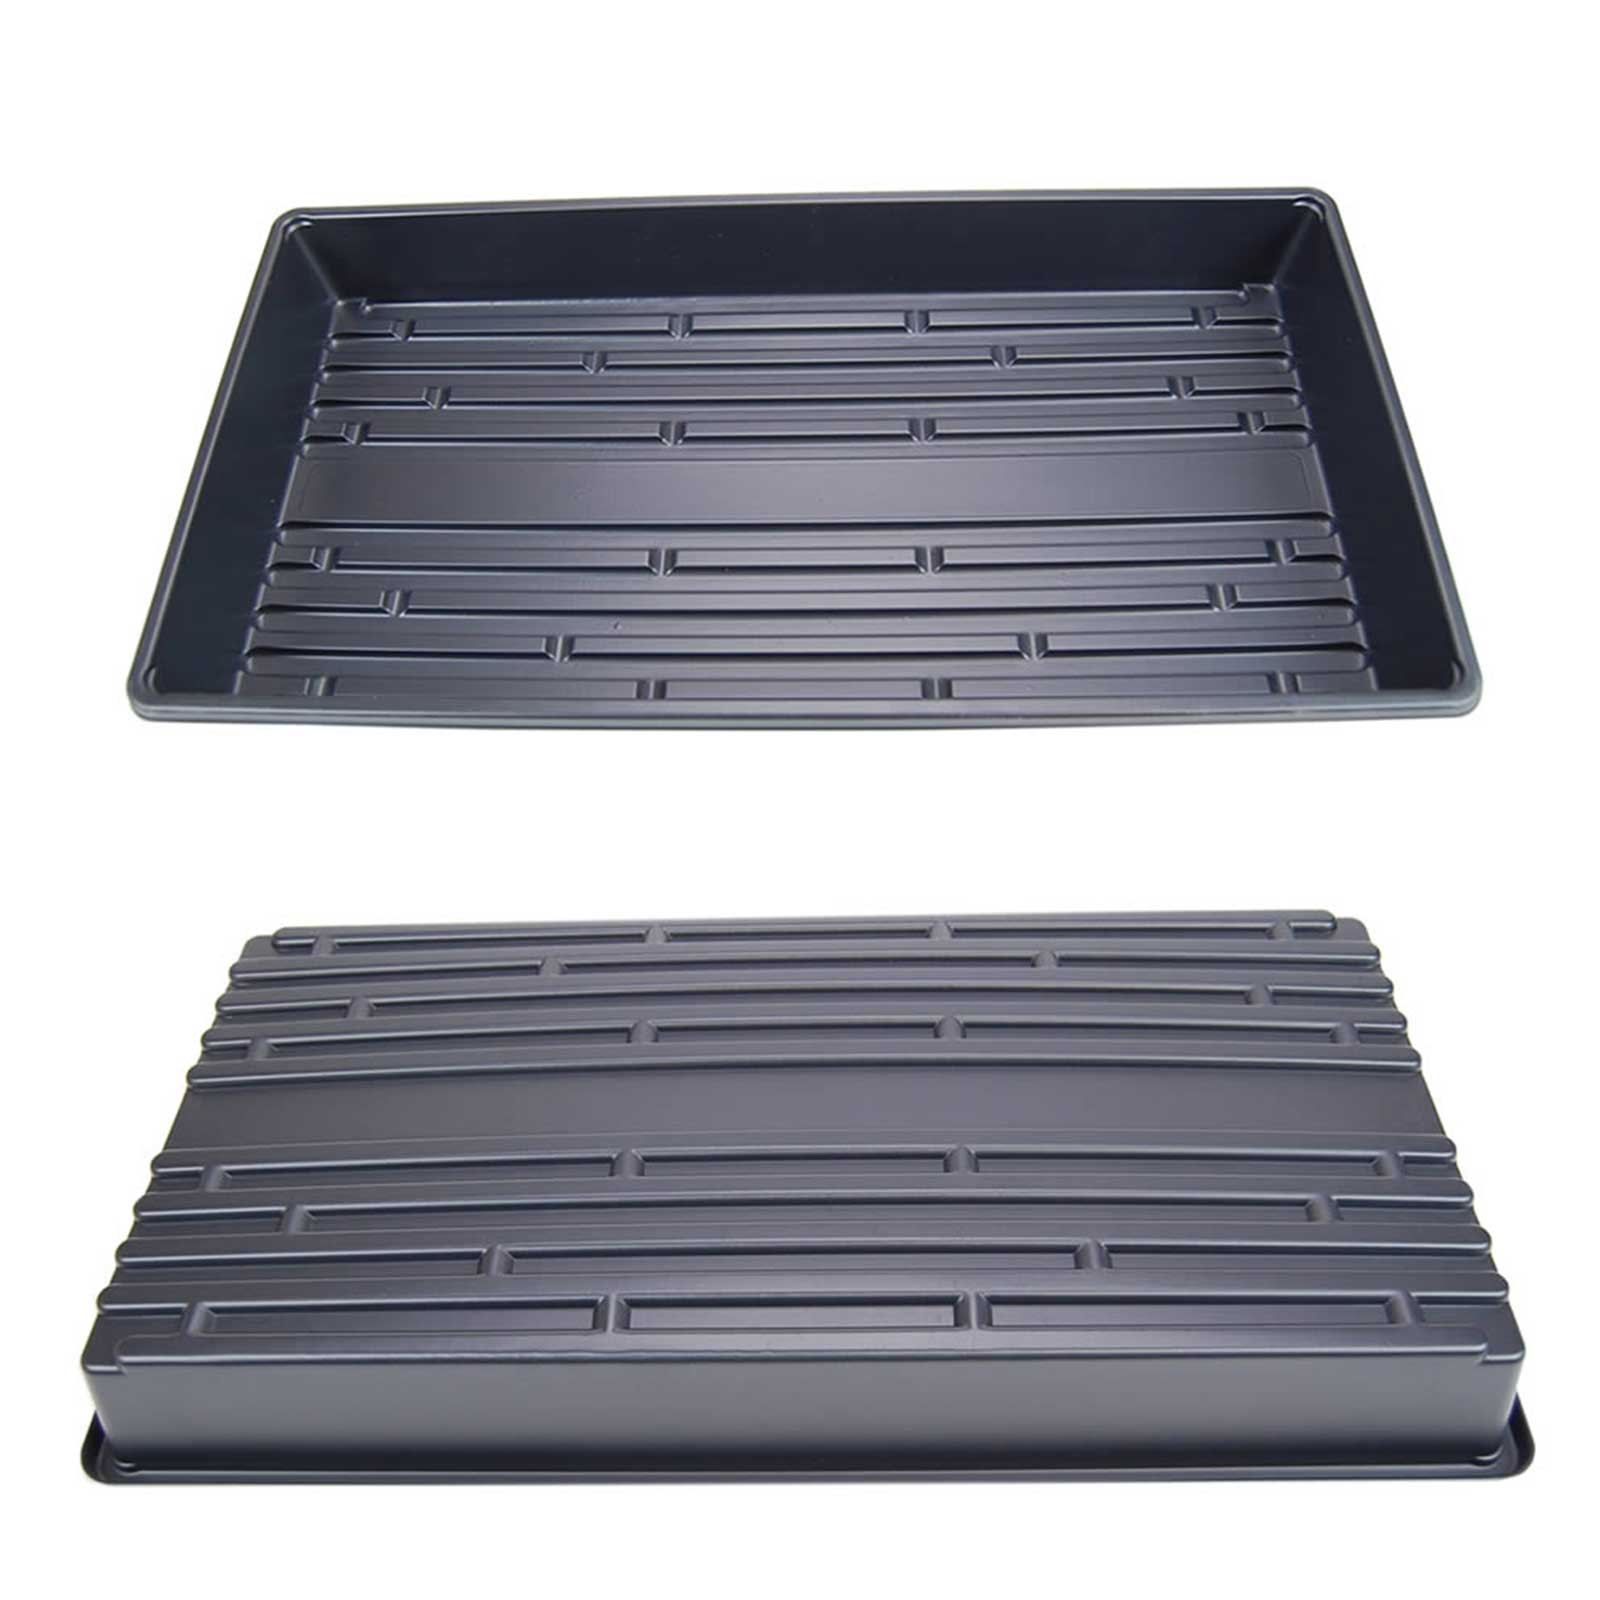 Large growing trays with NO drain holes. Perfect as a drip tray for trays with holes, or a growing tray for hydroponic applications. Approx. 20x10. Standard nursery plant growing tray sizing. Re-usable.